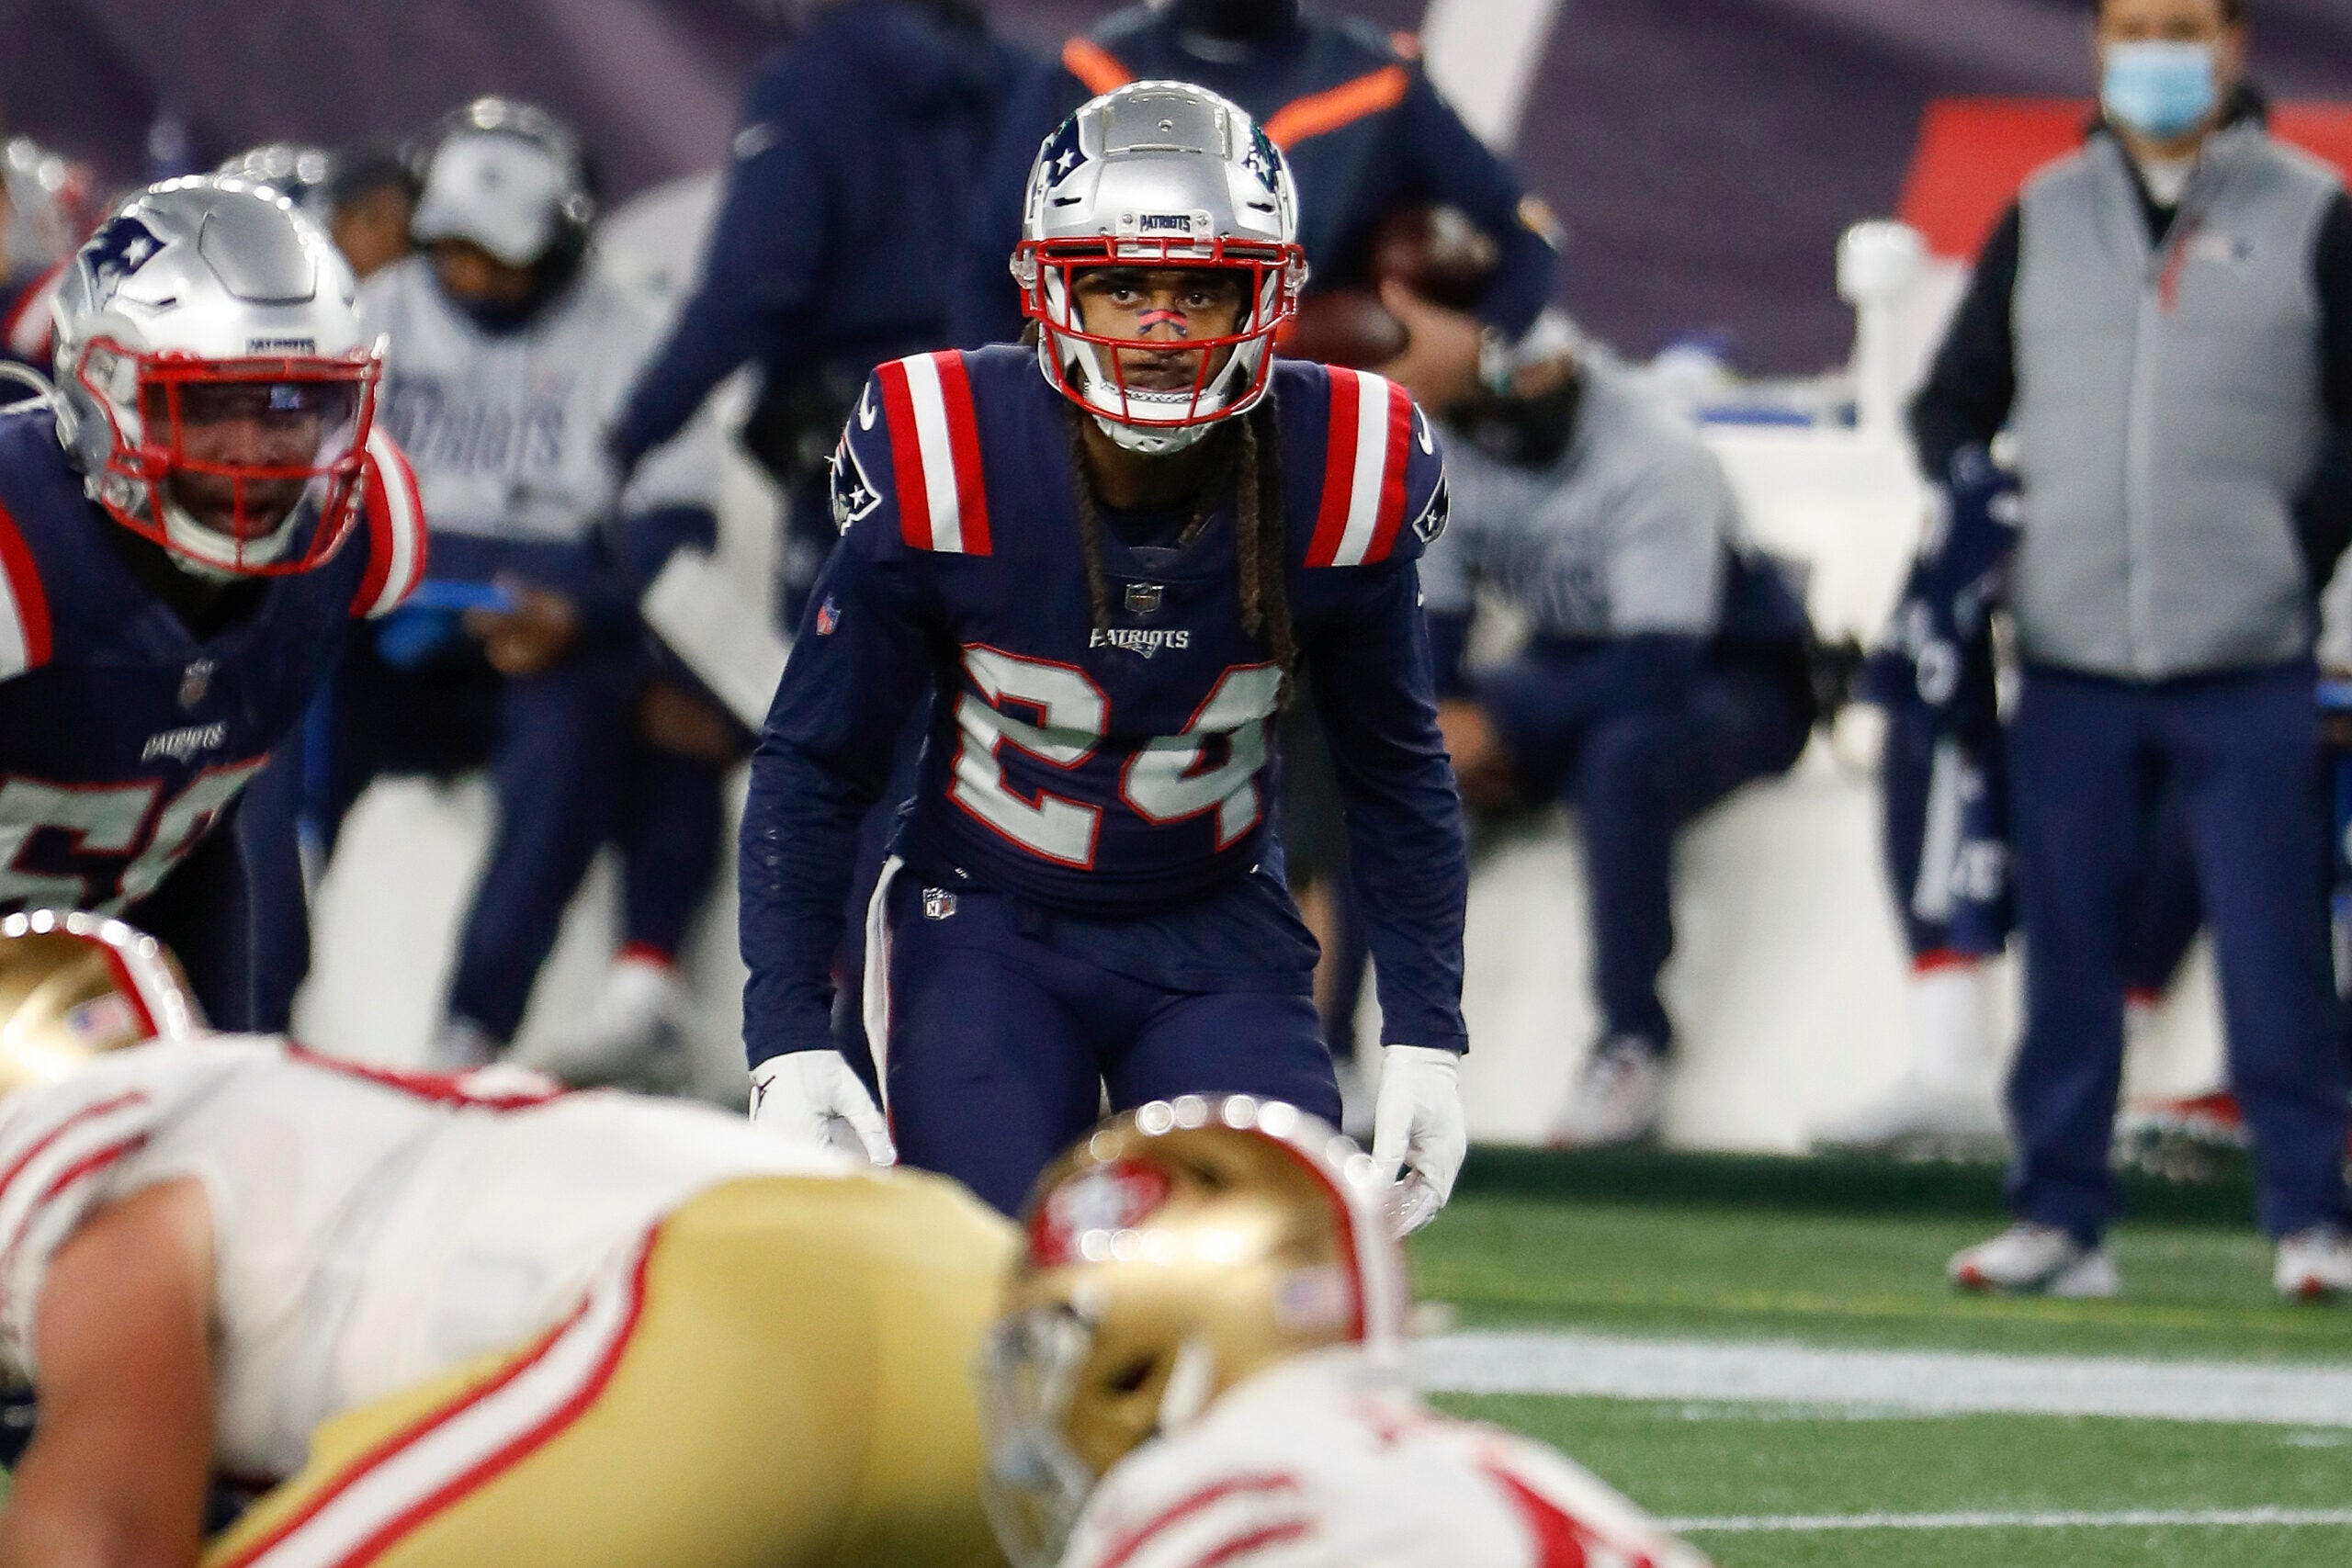 Despite minicamp holdout, pair of NFL insiders believe Stephon Gilmore's situation with Patriots won't become 'acrimonious' - Bo